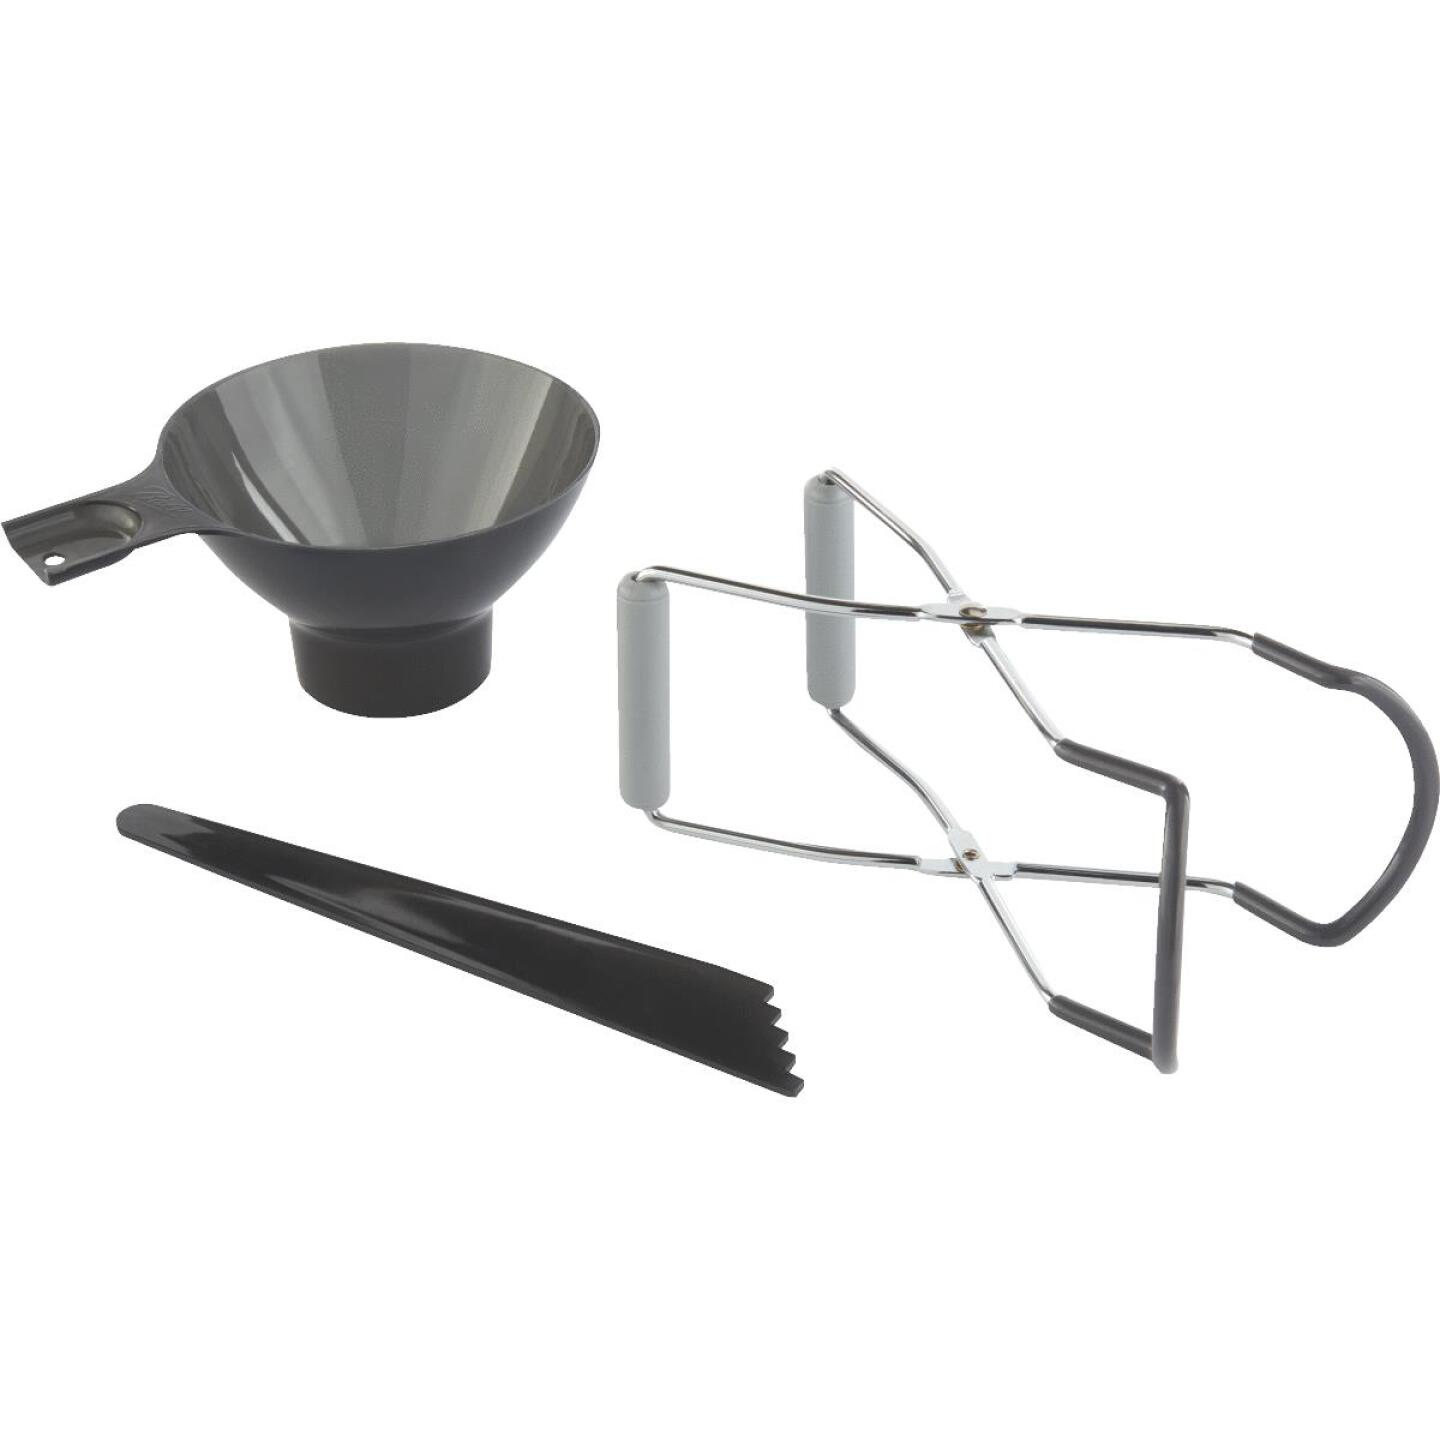 Ball Preserving Utensil Set (3-Count) Image 1